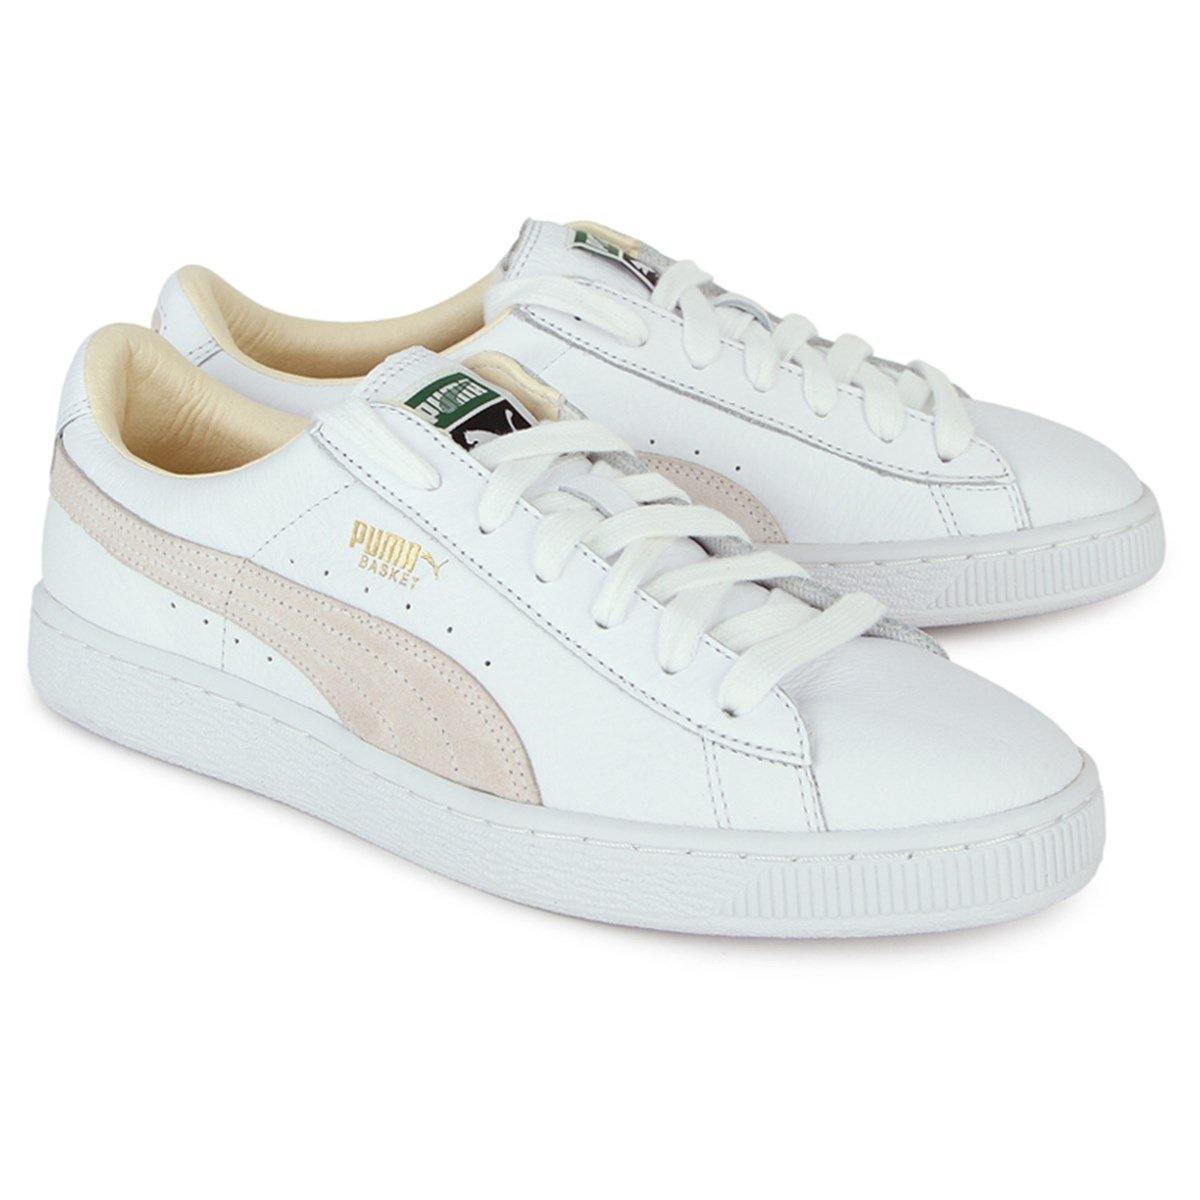 Puma Basket Classic Trainers White